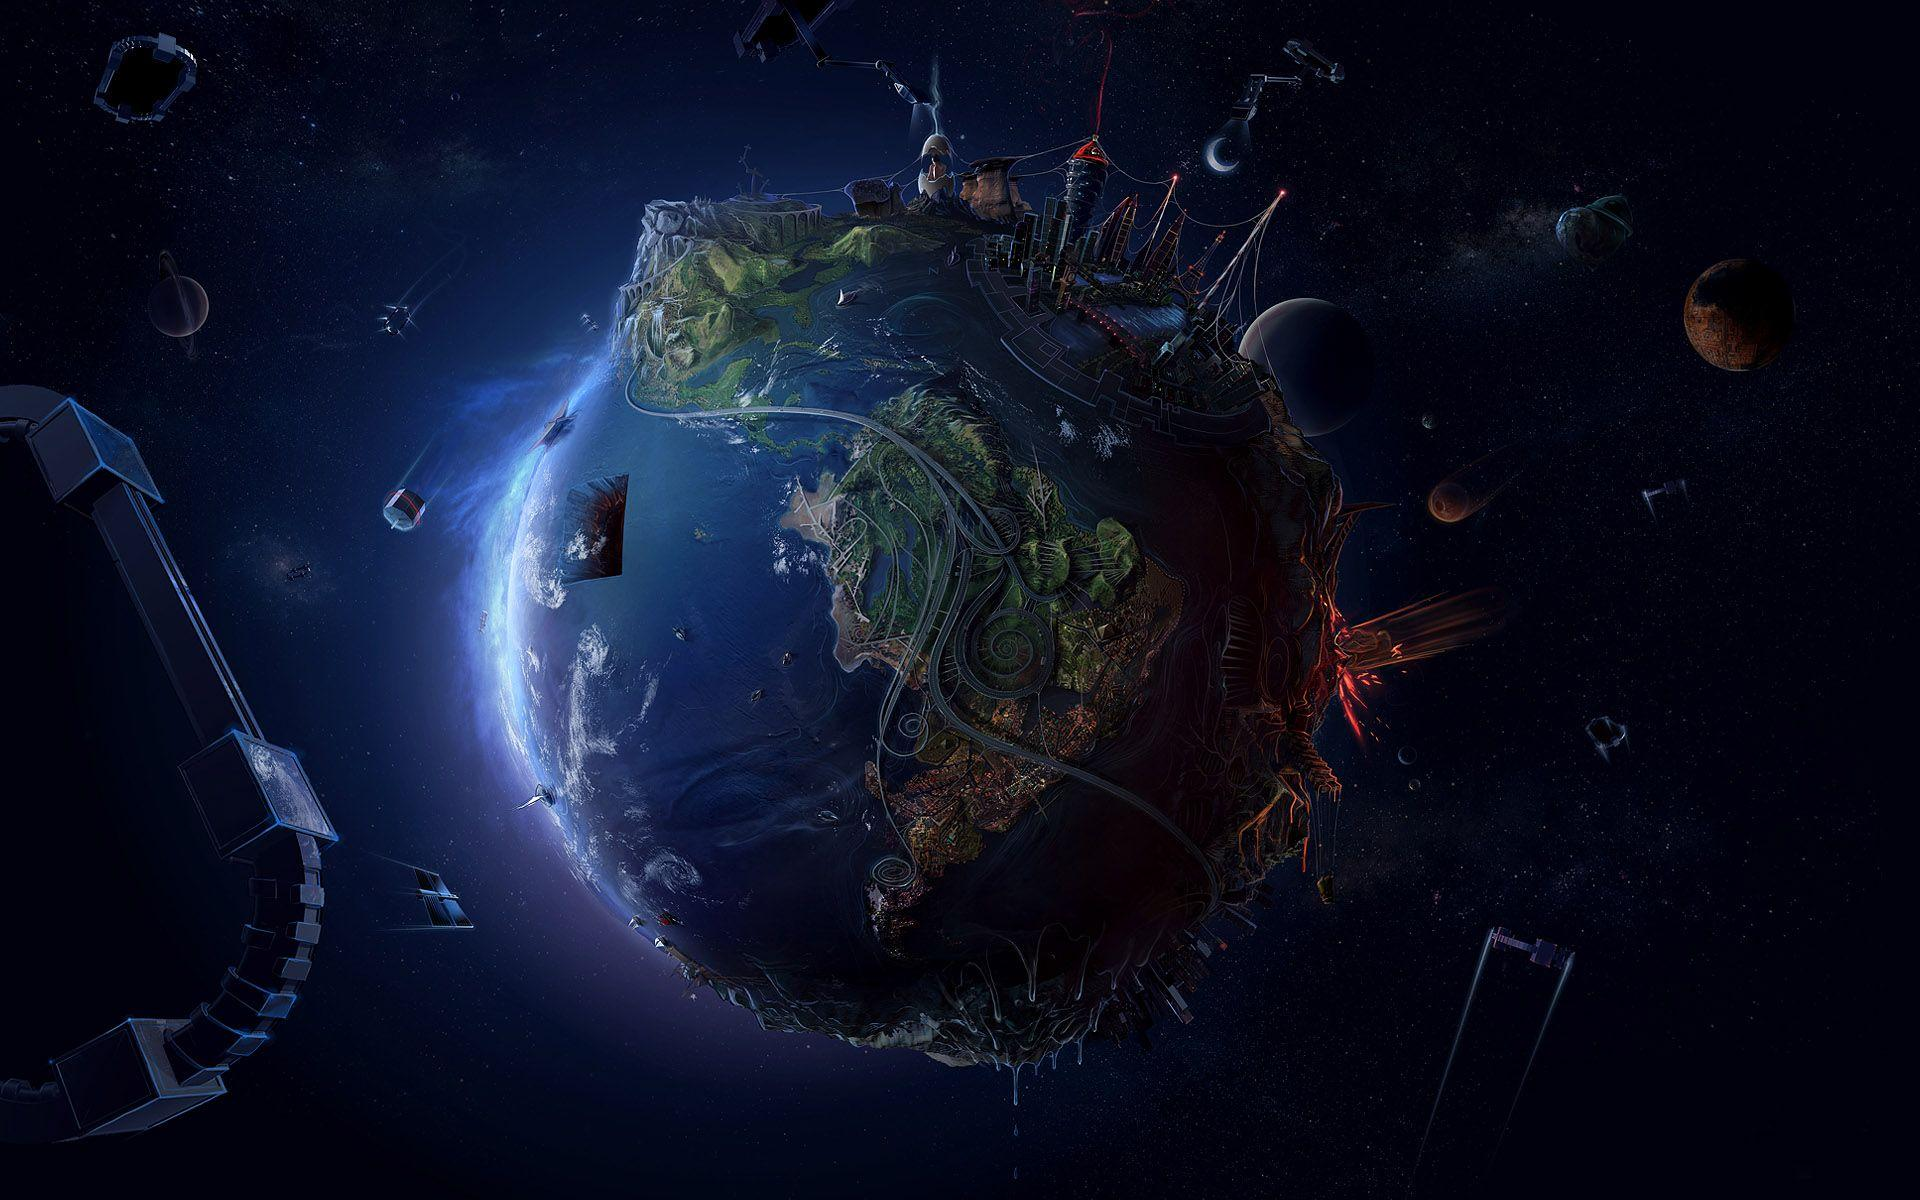 Planet Earth Abstract Wallpapers Top Free Planet Earth